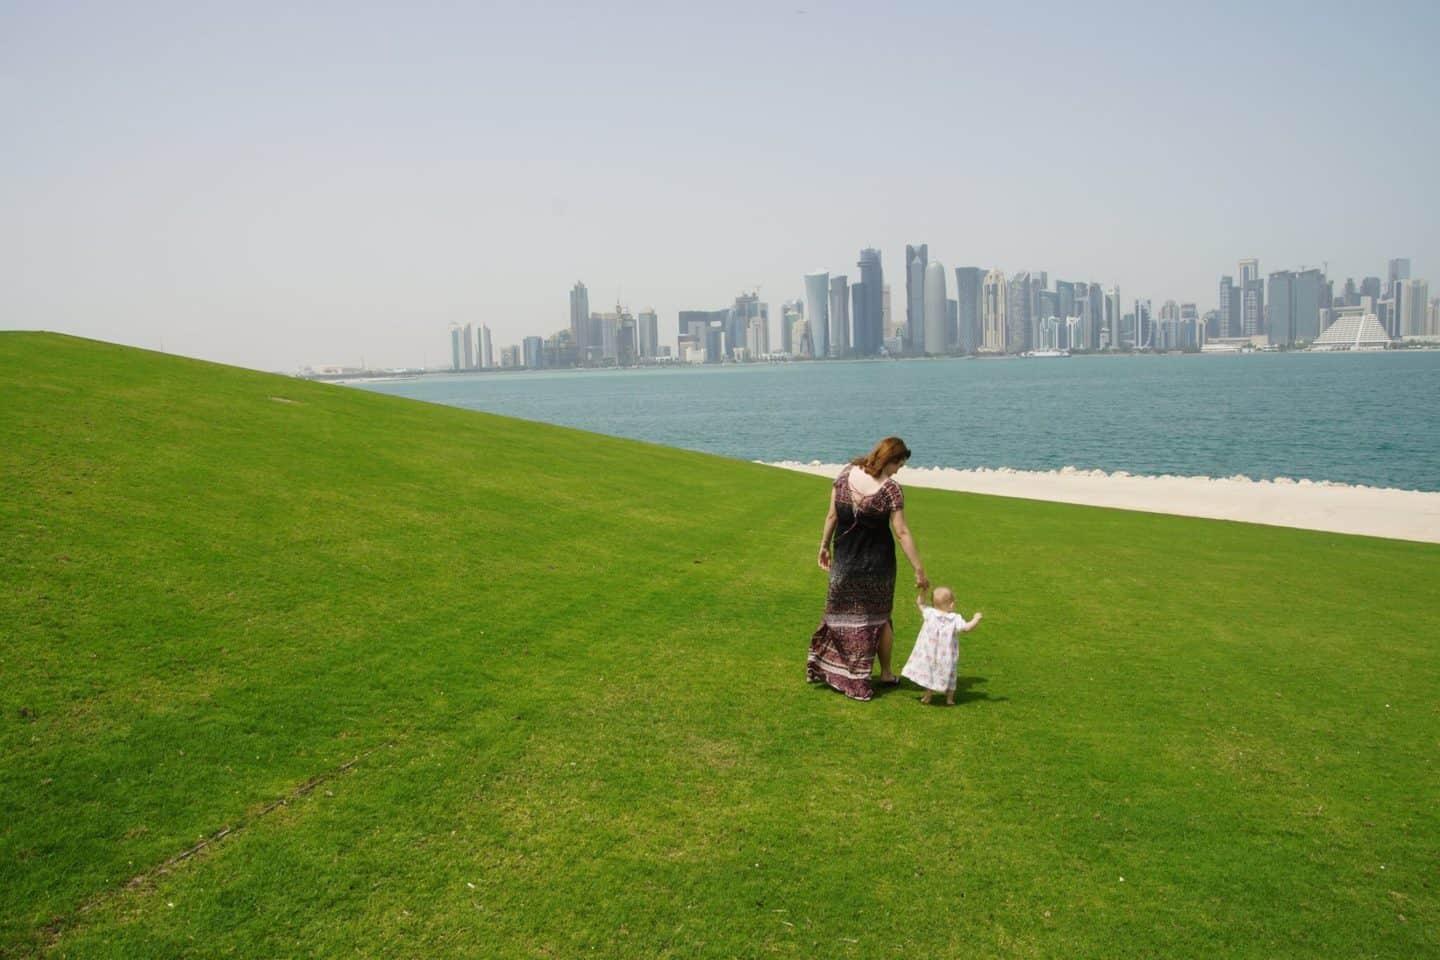 Instagram and Qatar – Ten Most Instagrammable Places in Qatar